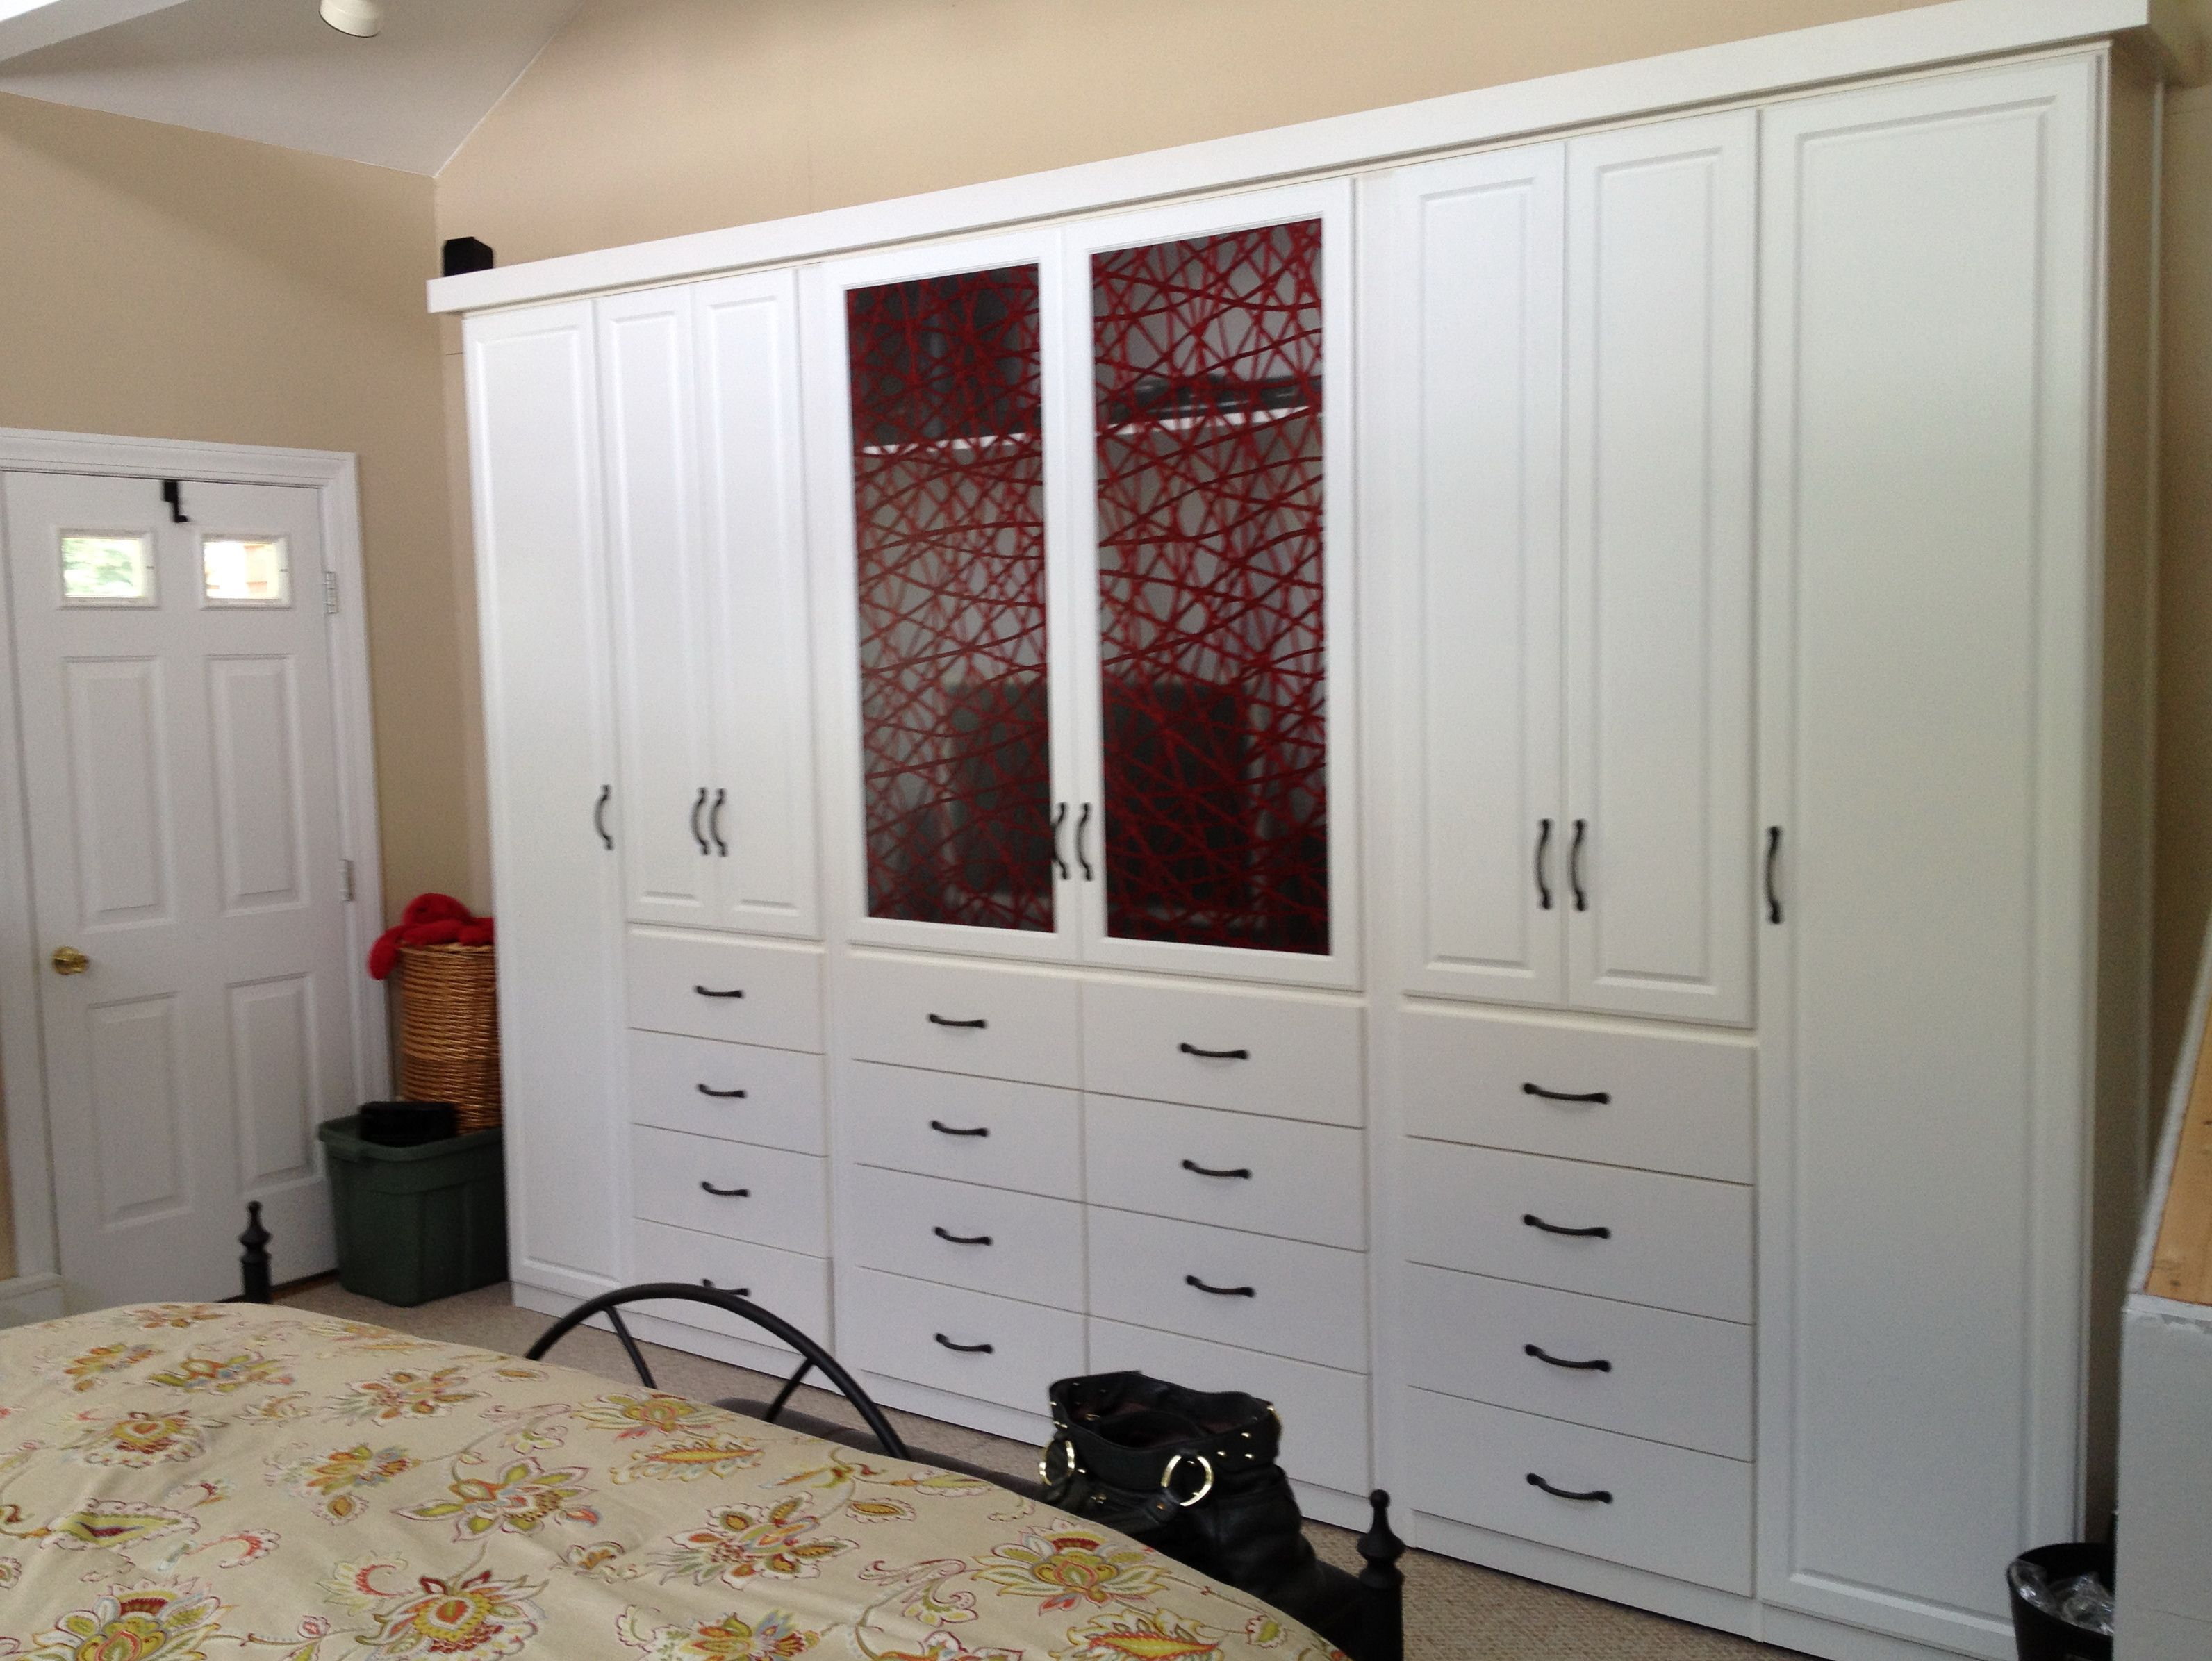 small home installed designed closets ins on trim built organizers ideas closet for dark cabinets in